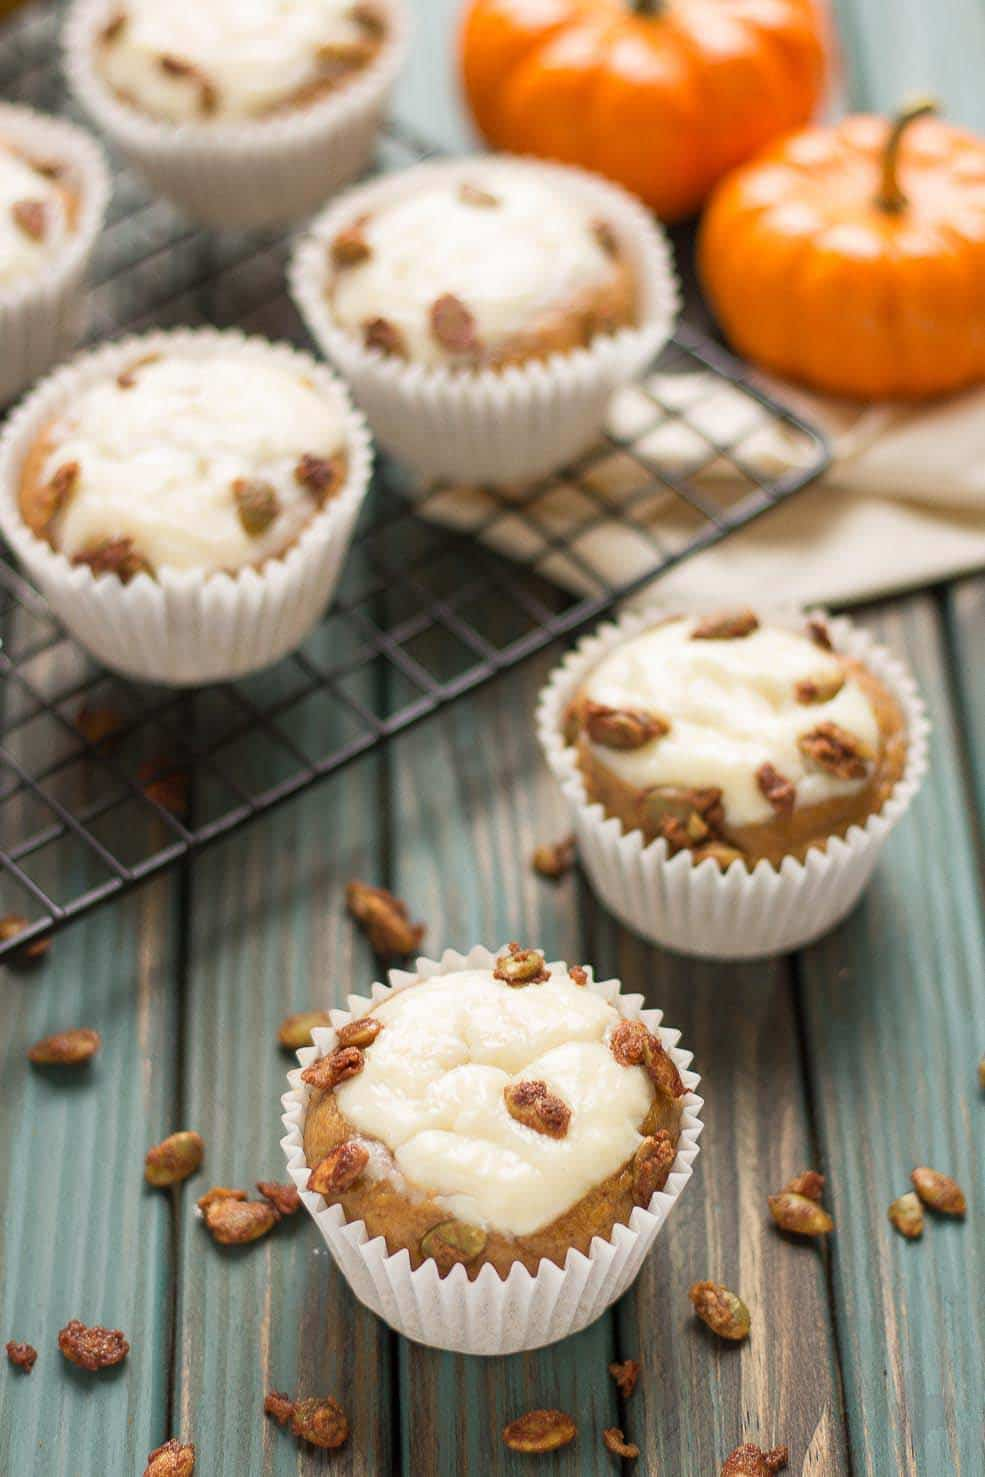 Pumpkin Spice Cream Cheese Muffins are the quintessential treat of Fall. Filled with aromatic autumn spices, stuffed with cream cheese and sprinkled with sugared pepitas, this is sure to be your go to Pumpkin Spice Cream Cheese Muffins recipe. | Strawberry Blondie Kitchen